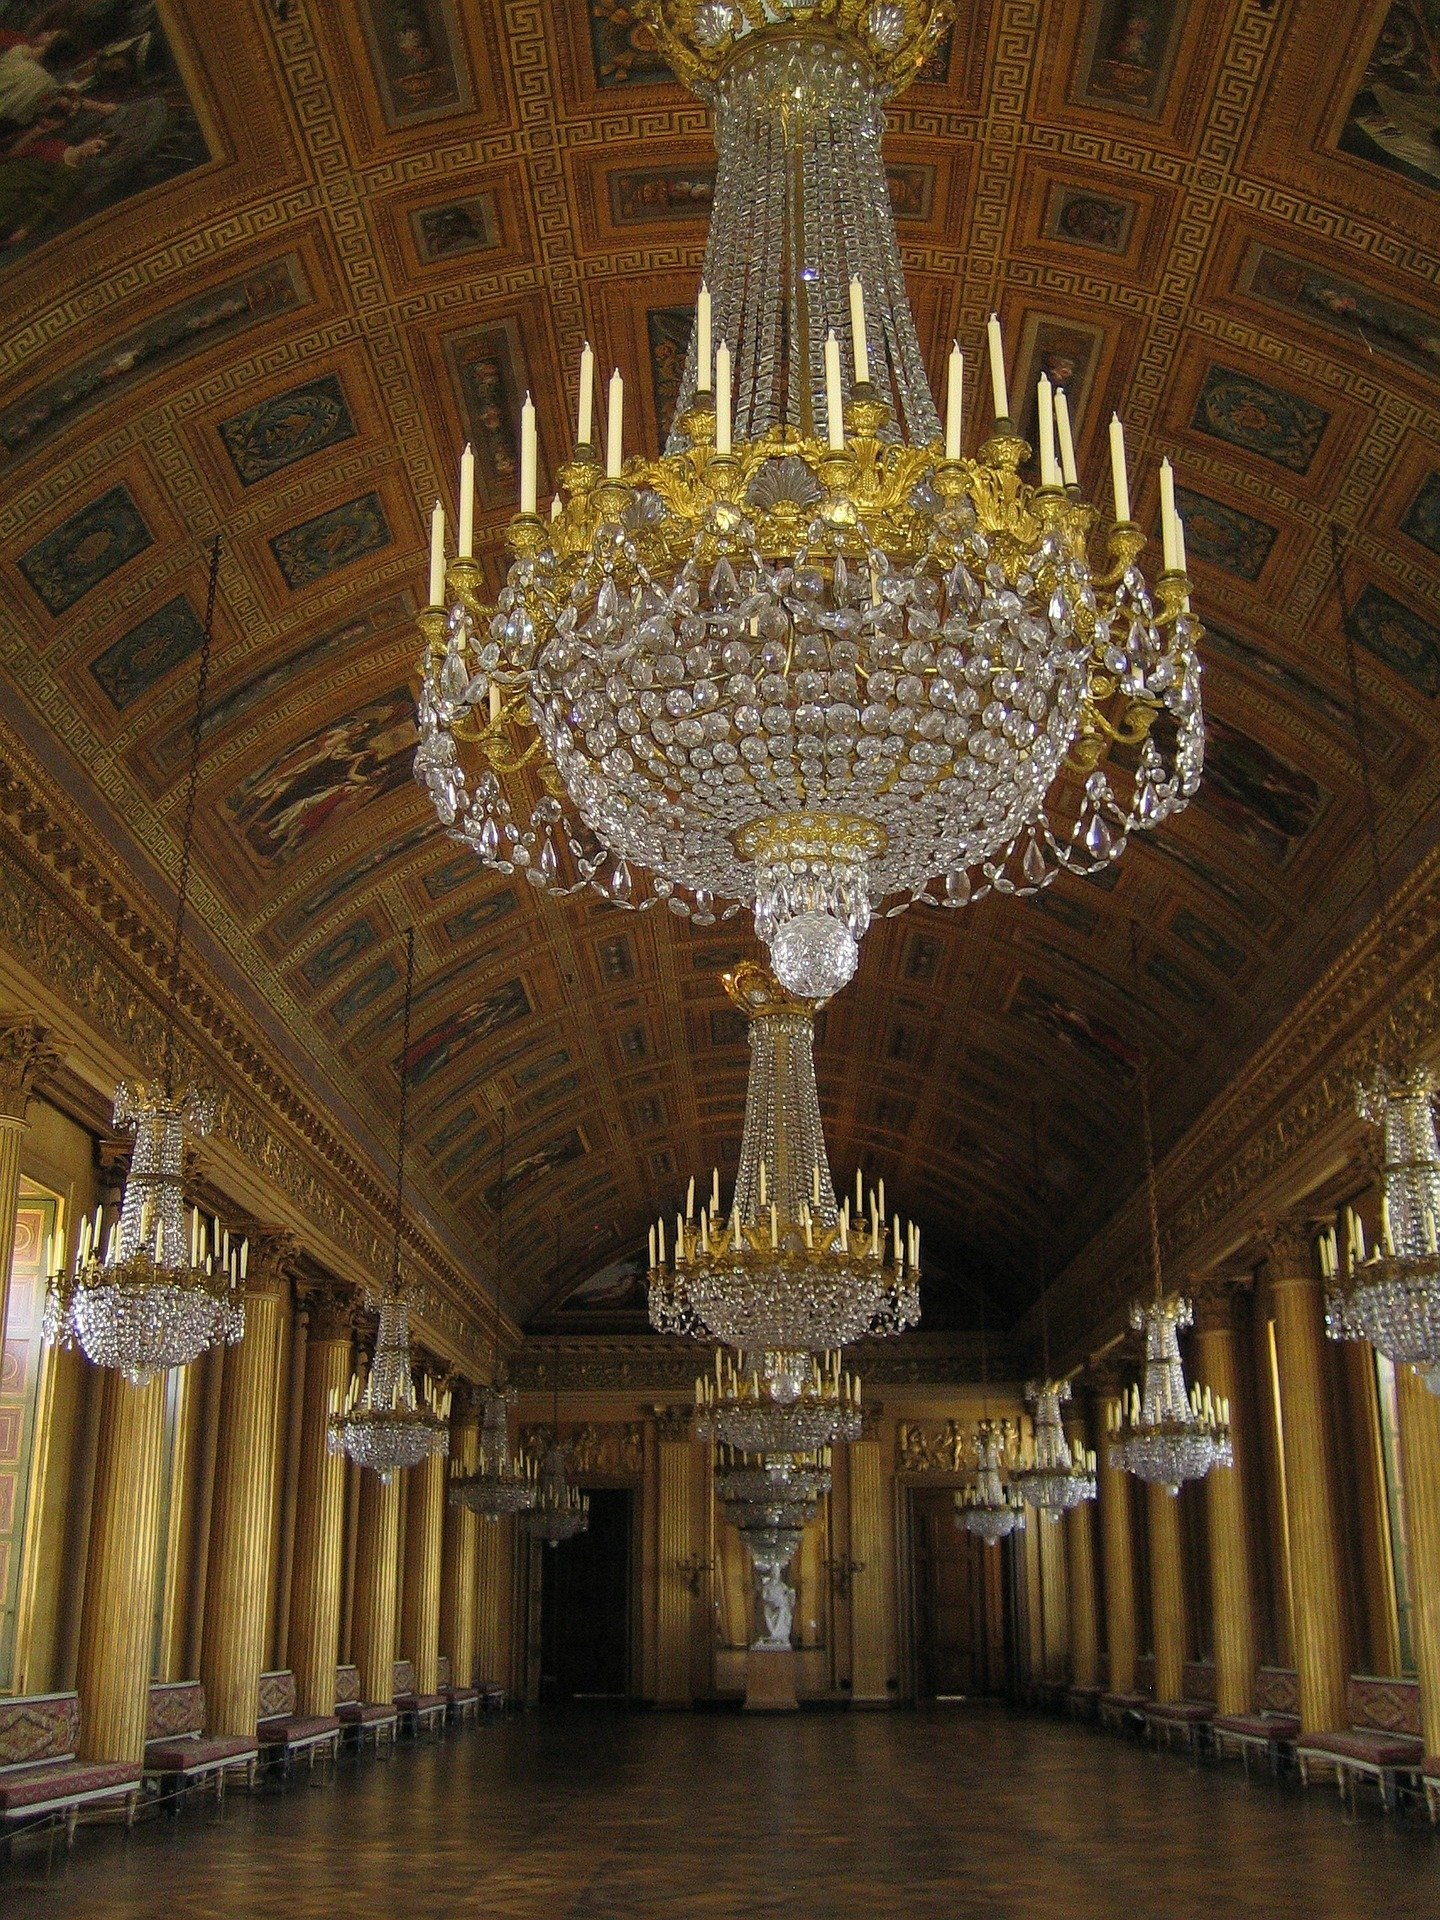 The ceiling was adorned with beautiful sparkling chandeliers. | Photo: Pixabay/Annemarie Bon